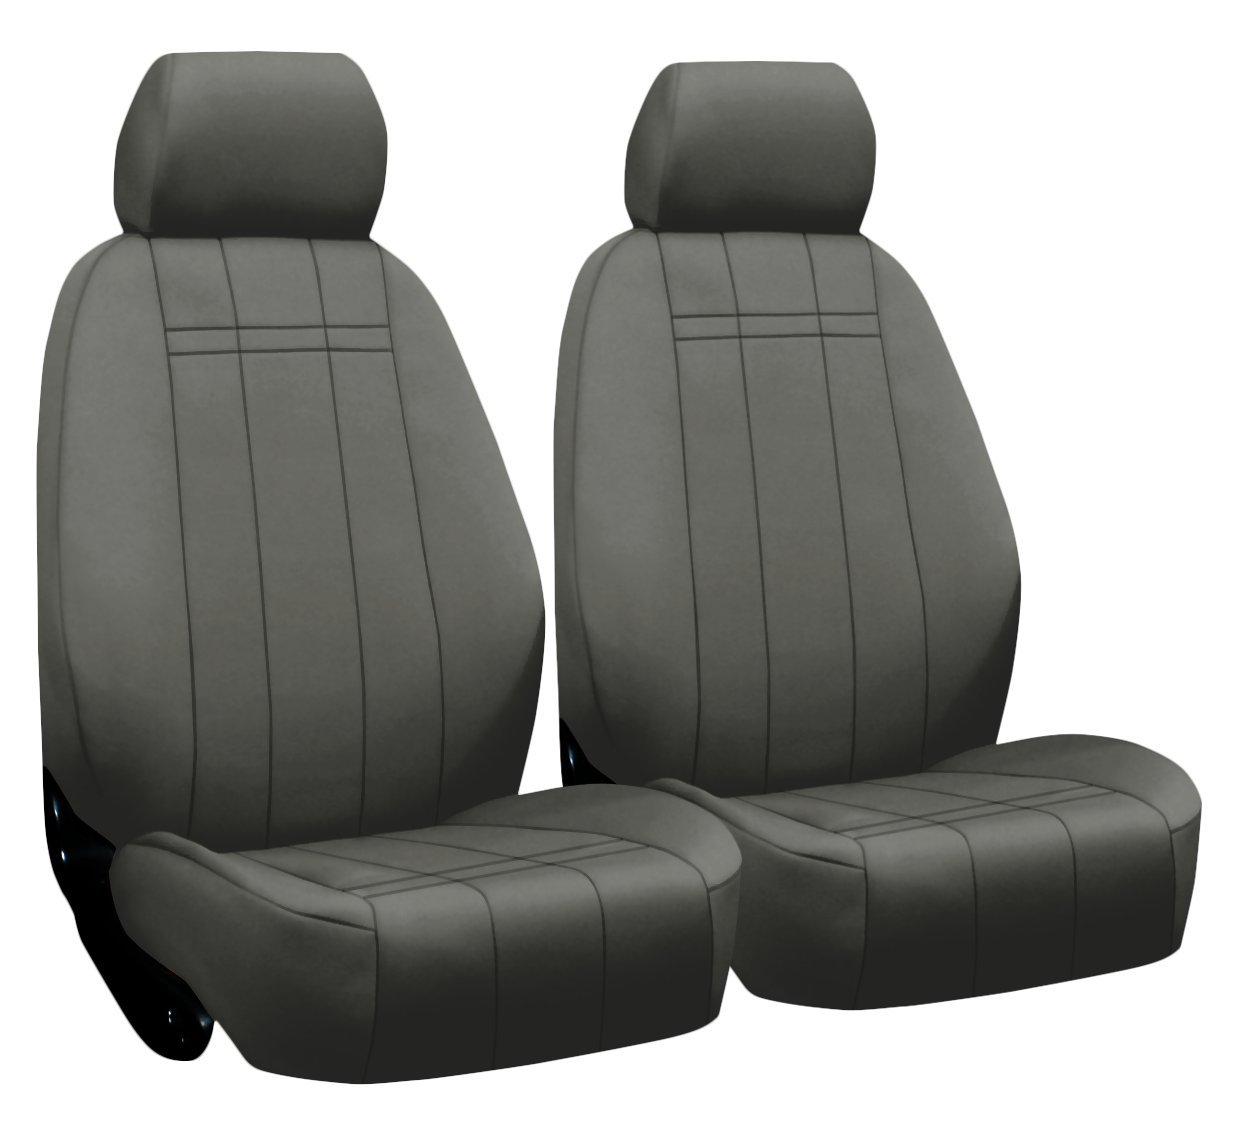 in Solid Black for Buckets w//Adjustable Headrests ShearComfort Custom Neoprene-Style Seat Covers for Toyota Tacoma 2016-2019 Front Seats